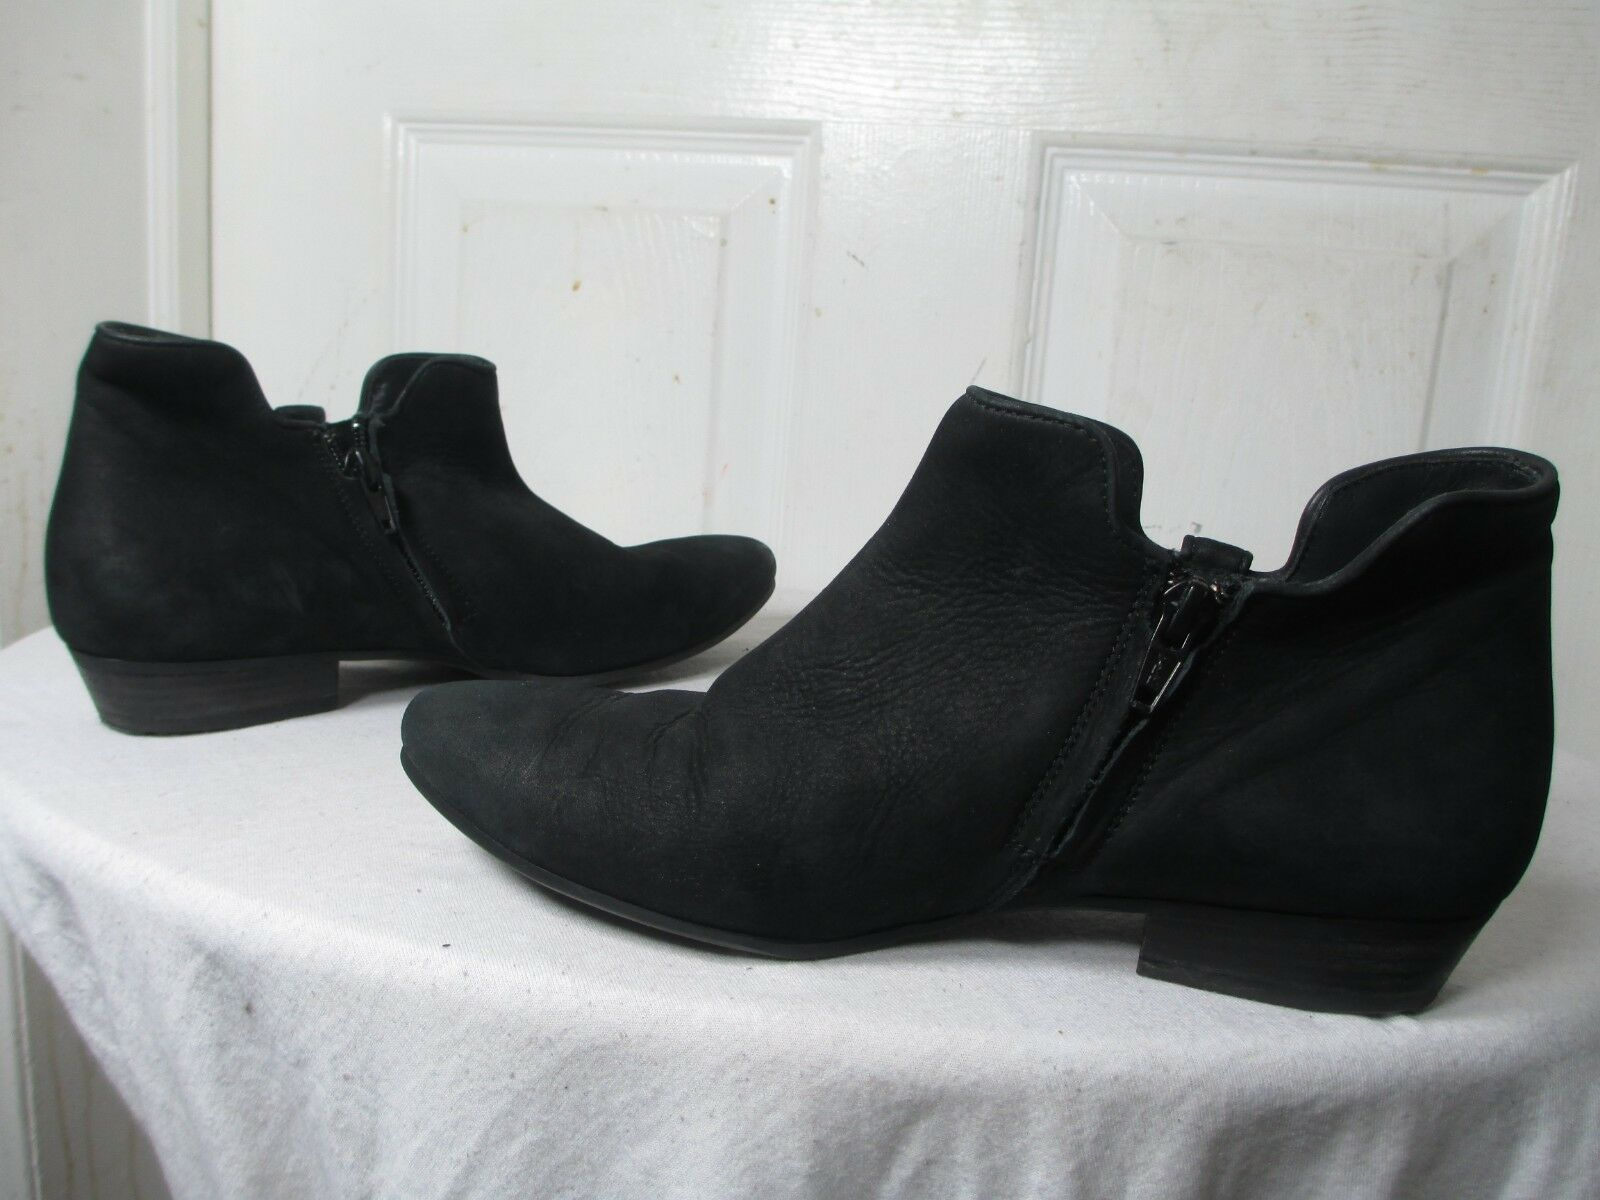 PAUL GREEN BARNES DISTRESSED DISTRESSED DISTRESSED BLACK LEATHER ANKLE BOOTS WOMEN PG SZ 4 US 7  350 c7bba2